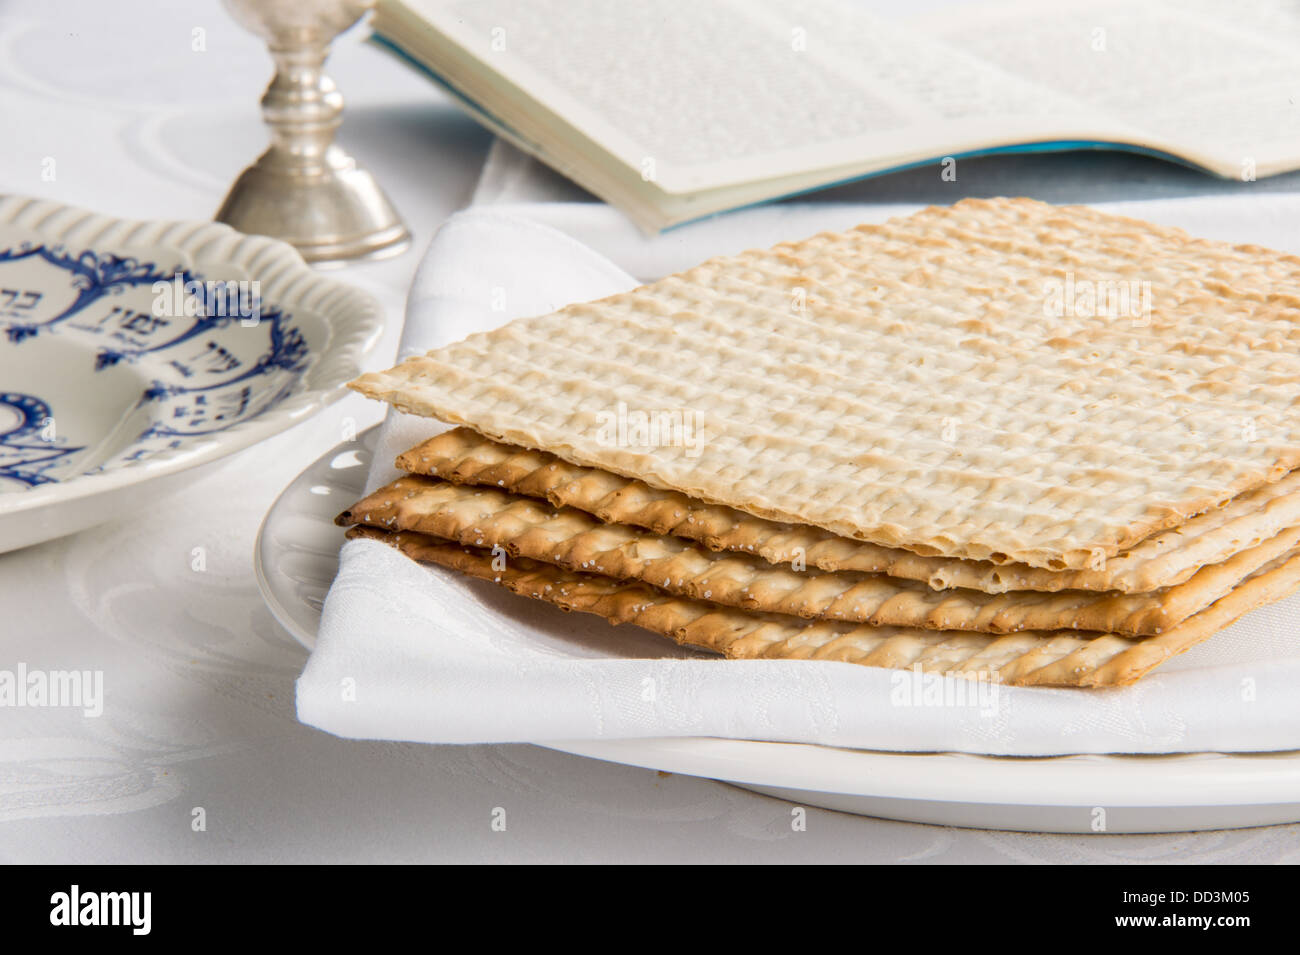 Closeup of Matzah on Plate which is the unleaven bread served at Jewish Passover dinners - Stock Image